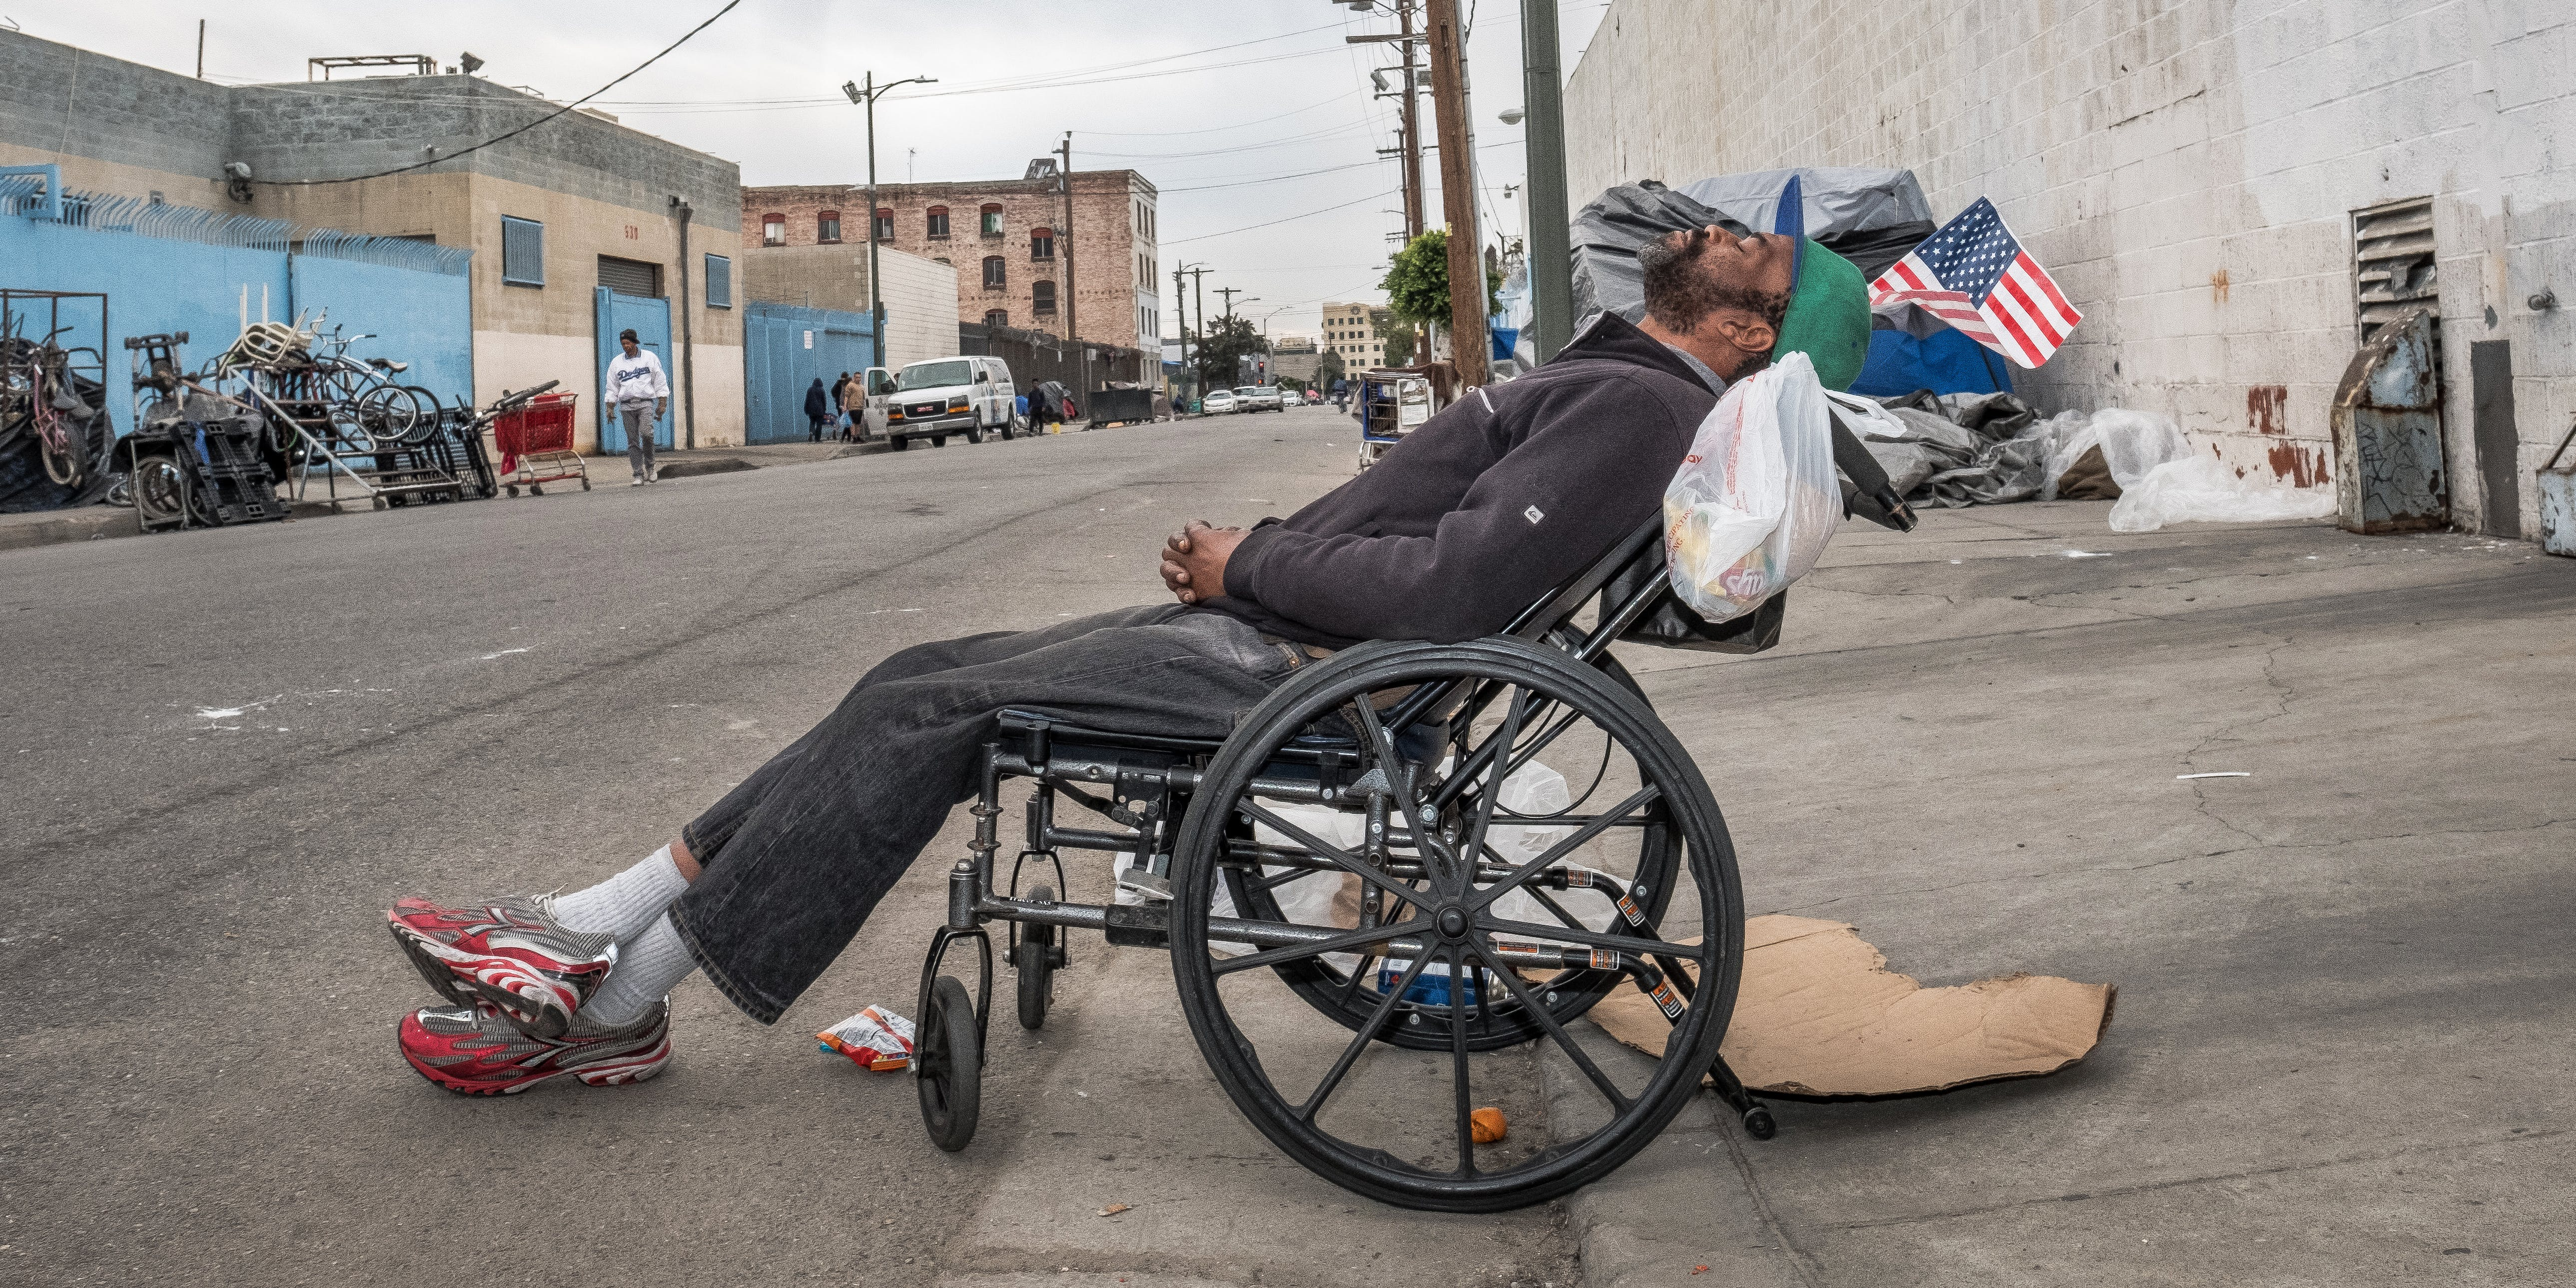 Man in wheelchairs sit on sidewalk, reclined, asleep.